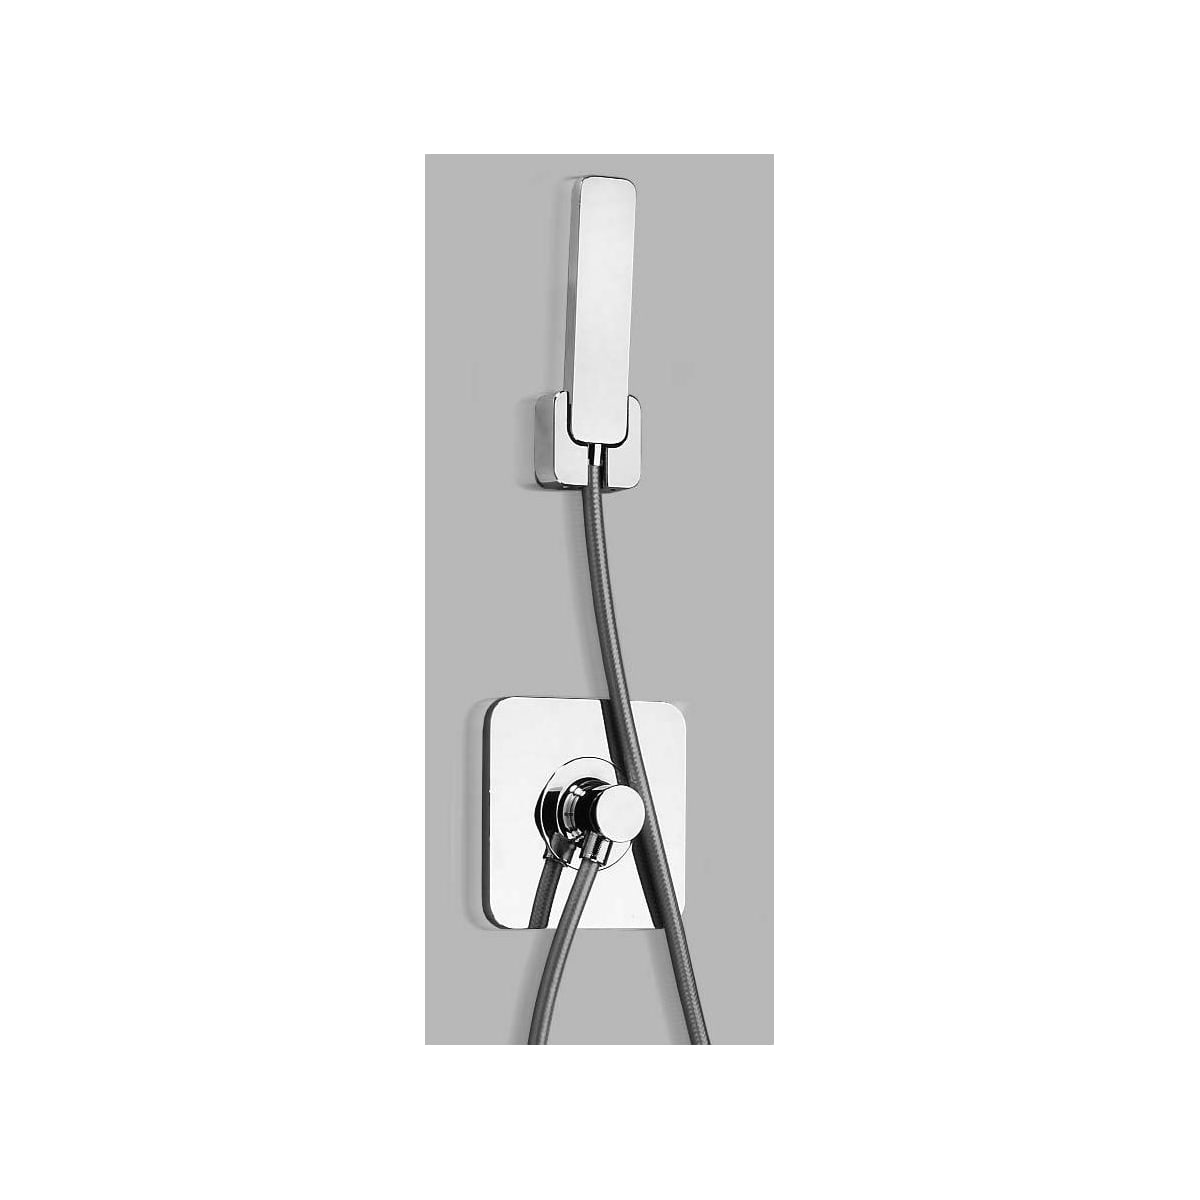 Toto Ts170f Cp Chrome Kiwami Renesse Single Function Hand Shower Faucet Com